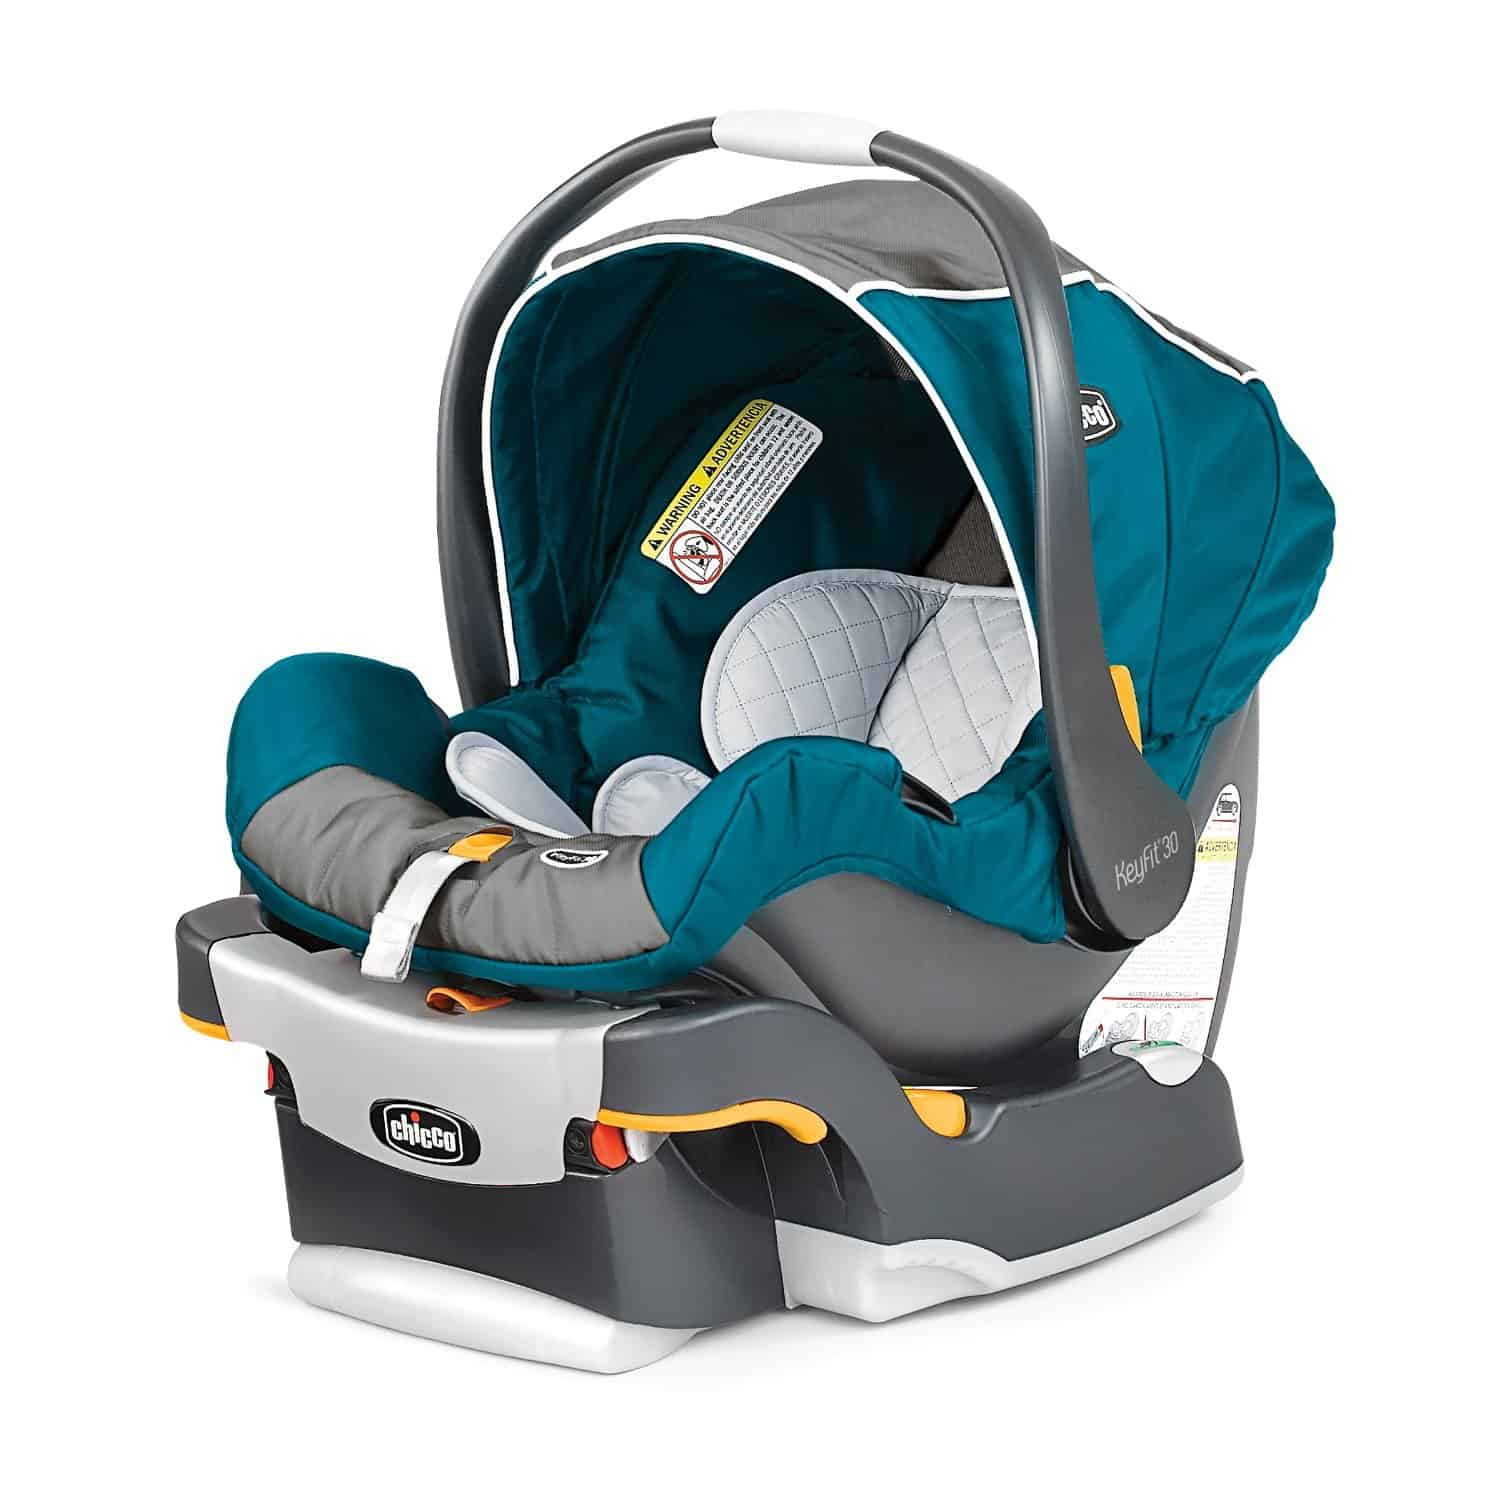 The Best Infant Car Seat 2019